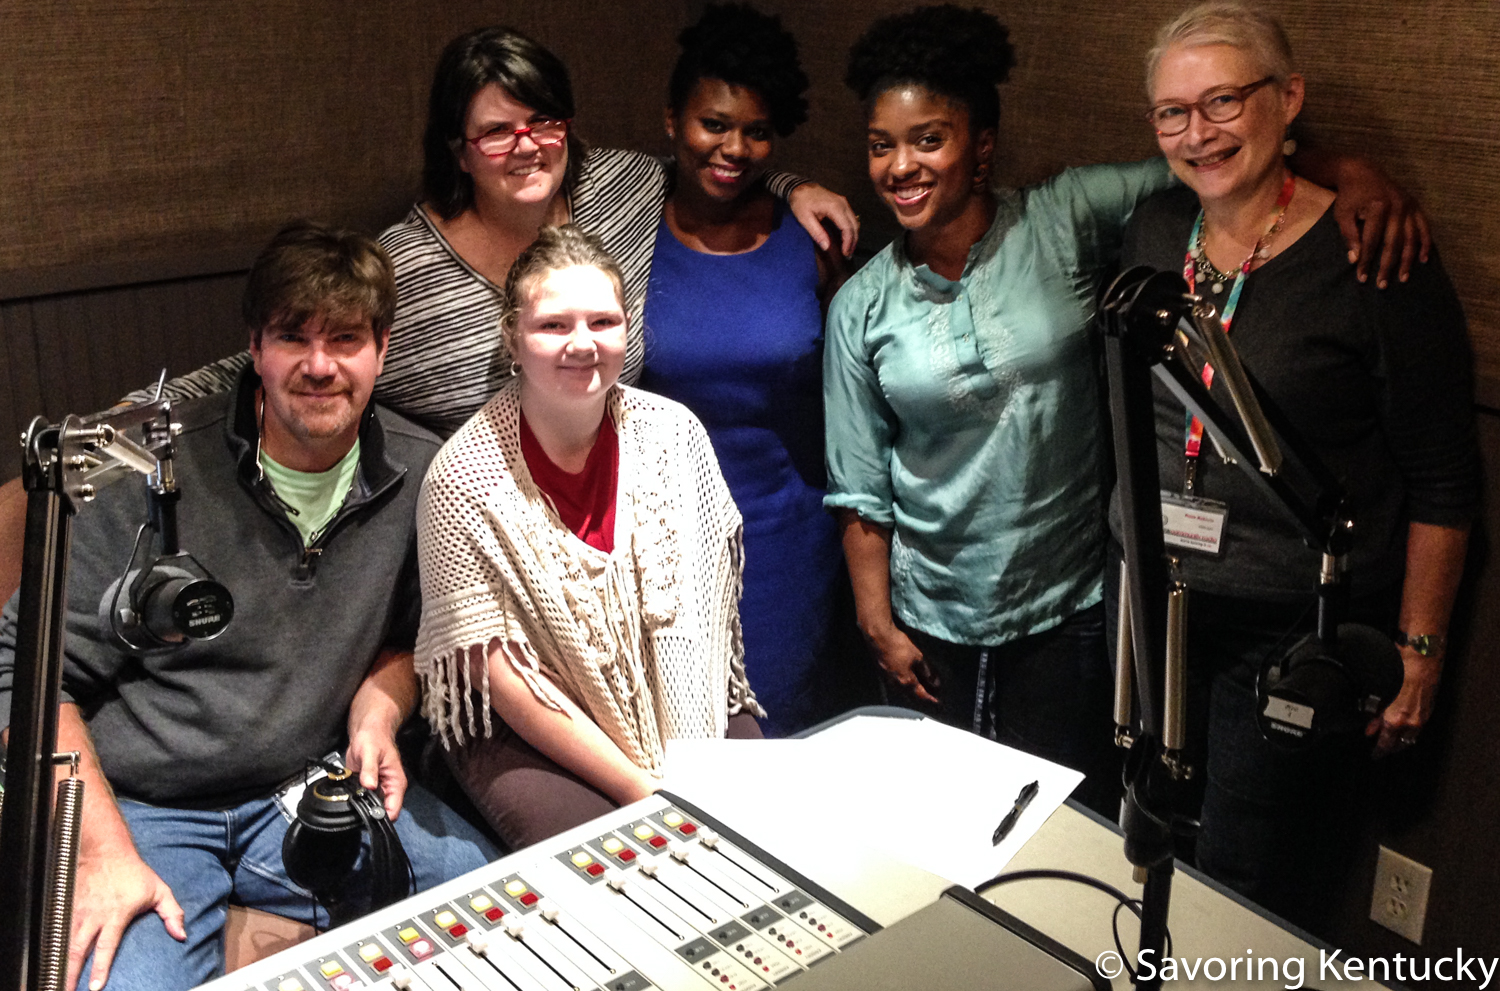 Co-hosts and guests at Hot Water Cornbread: Kentucky Food Radio, October 2015. From left, co-hosts Chris and Ouita Michel with their daughter (seated), Willa, and show guests Ashley Smith and Lacreesha Berry, co-host Rona Roberts.